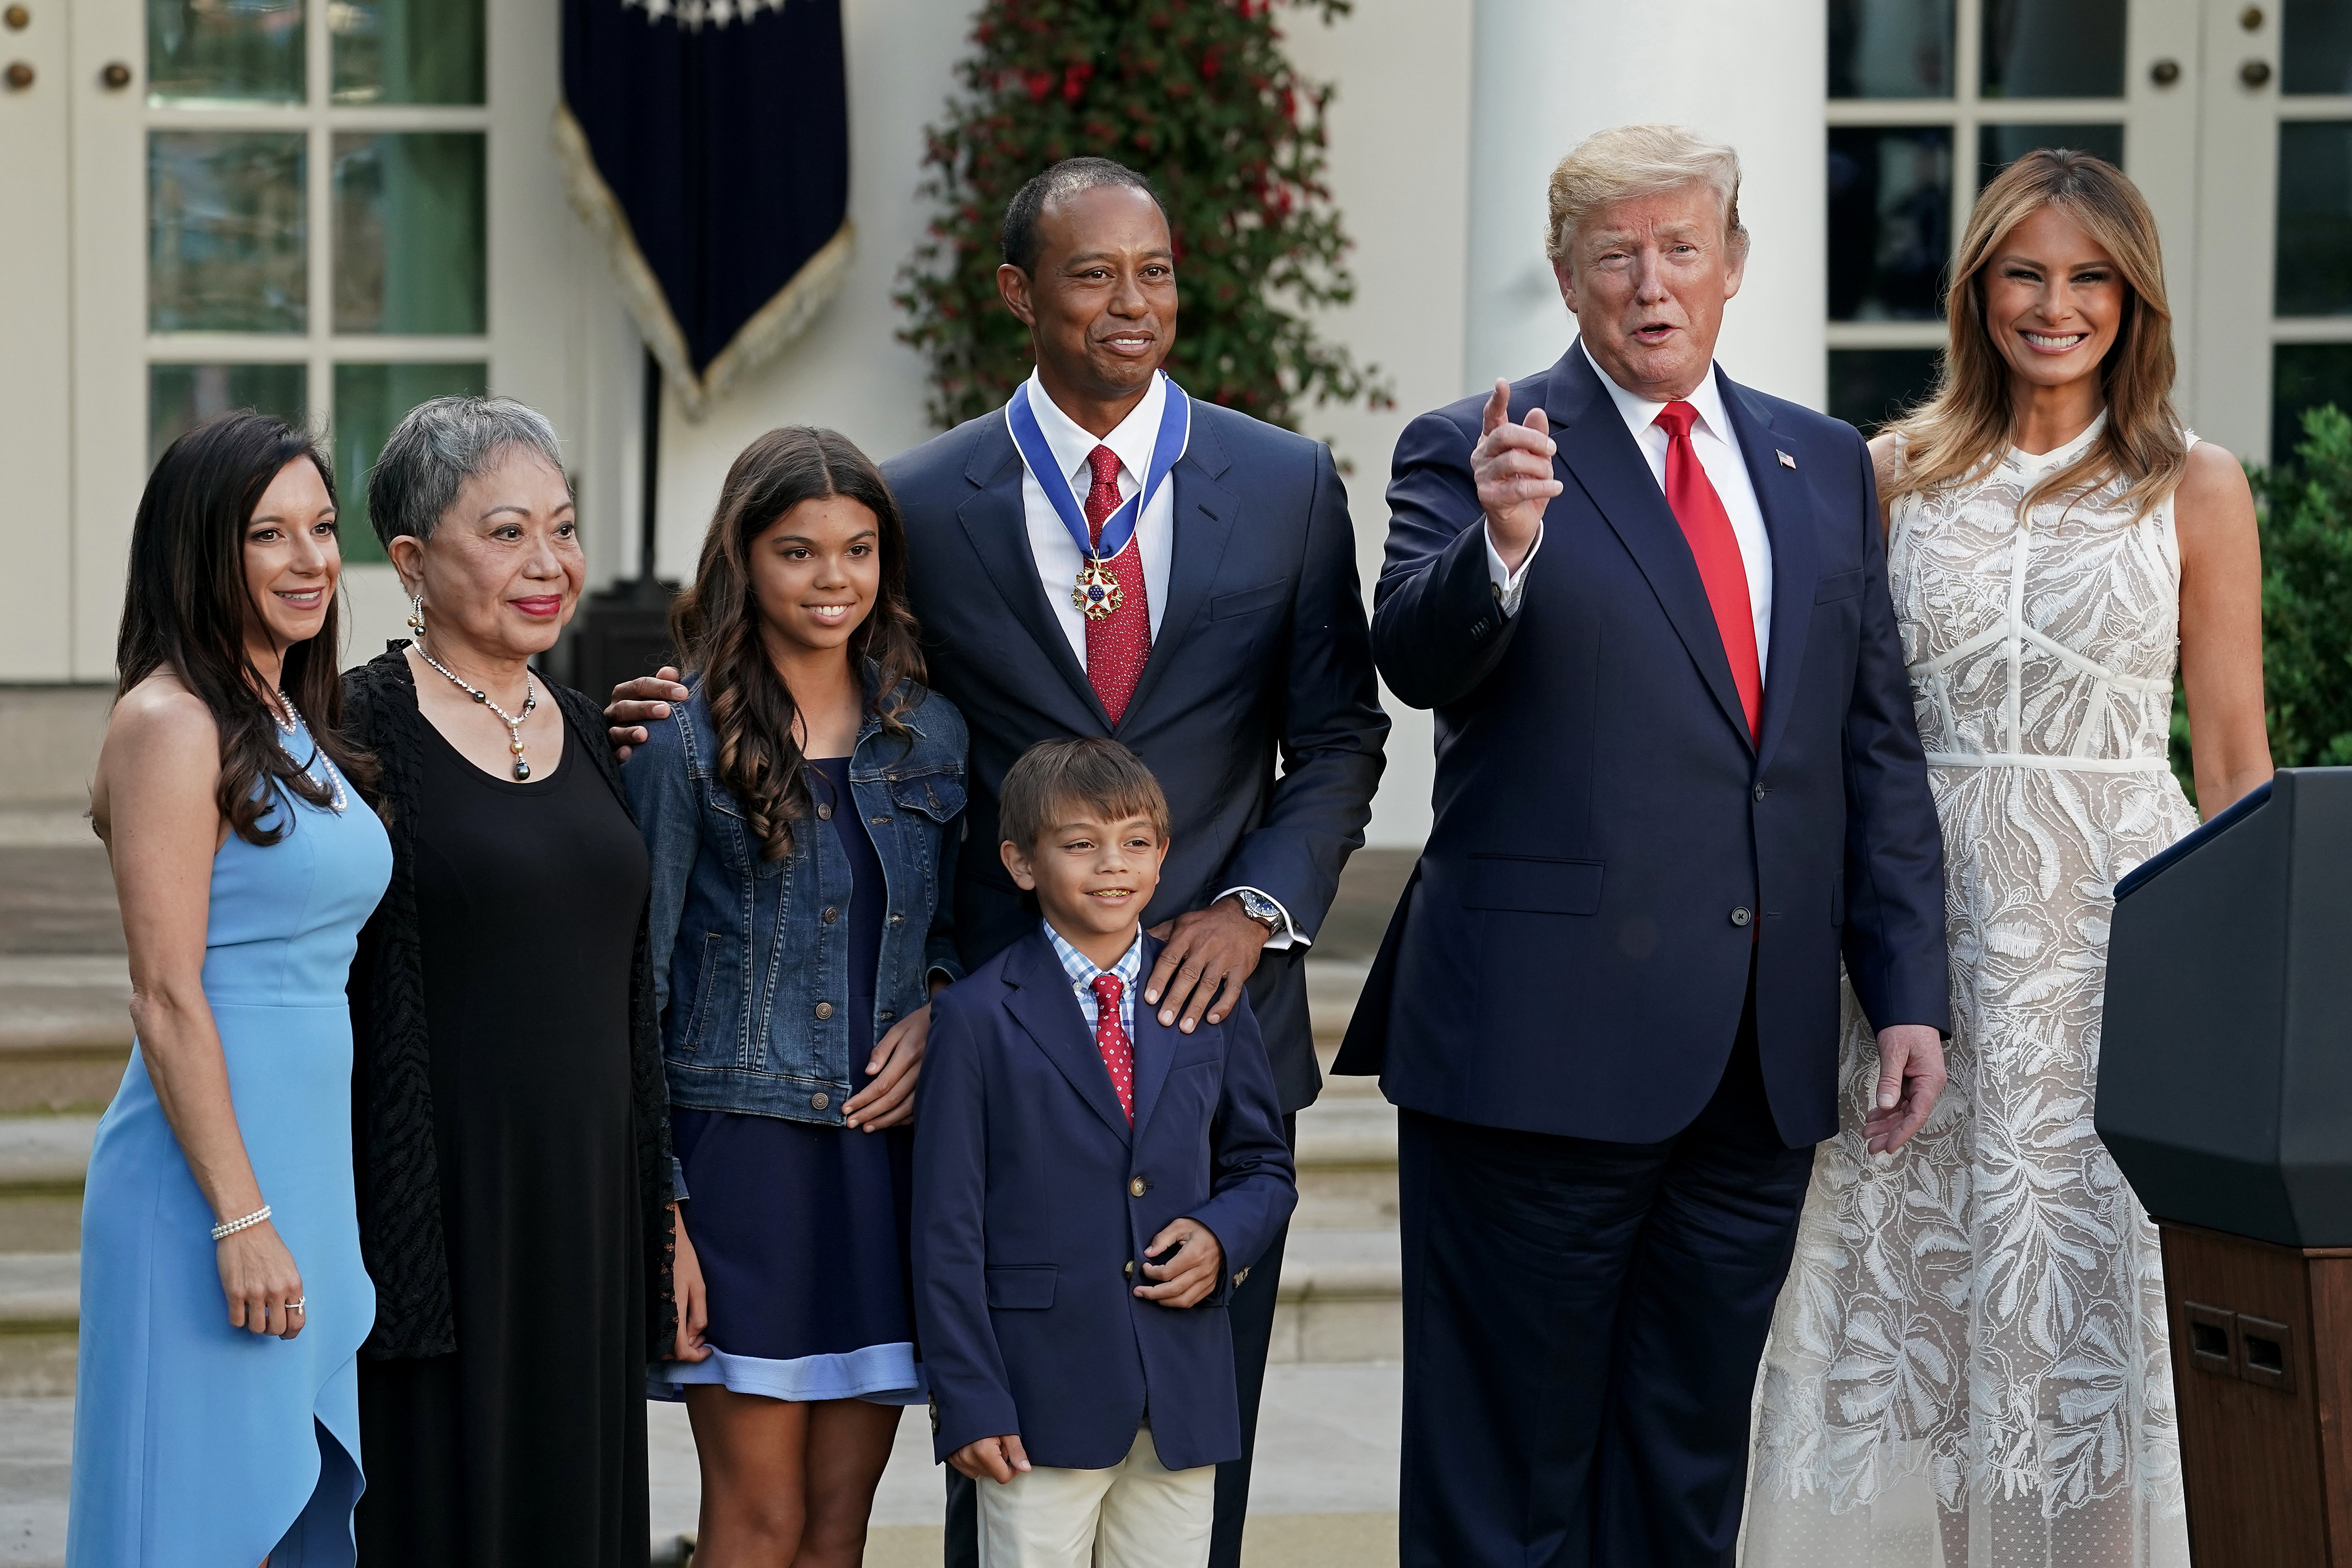 Donald Trump and Melania Trump pose with Tiger Woods and his family in the Rose Garden at the White House | Photo: Getty Images